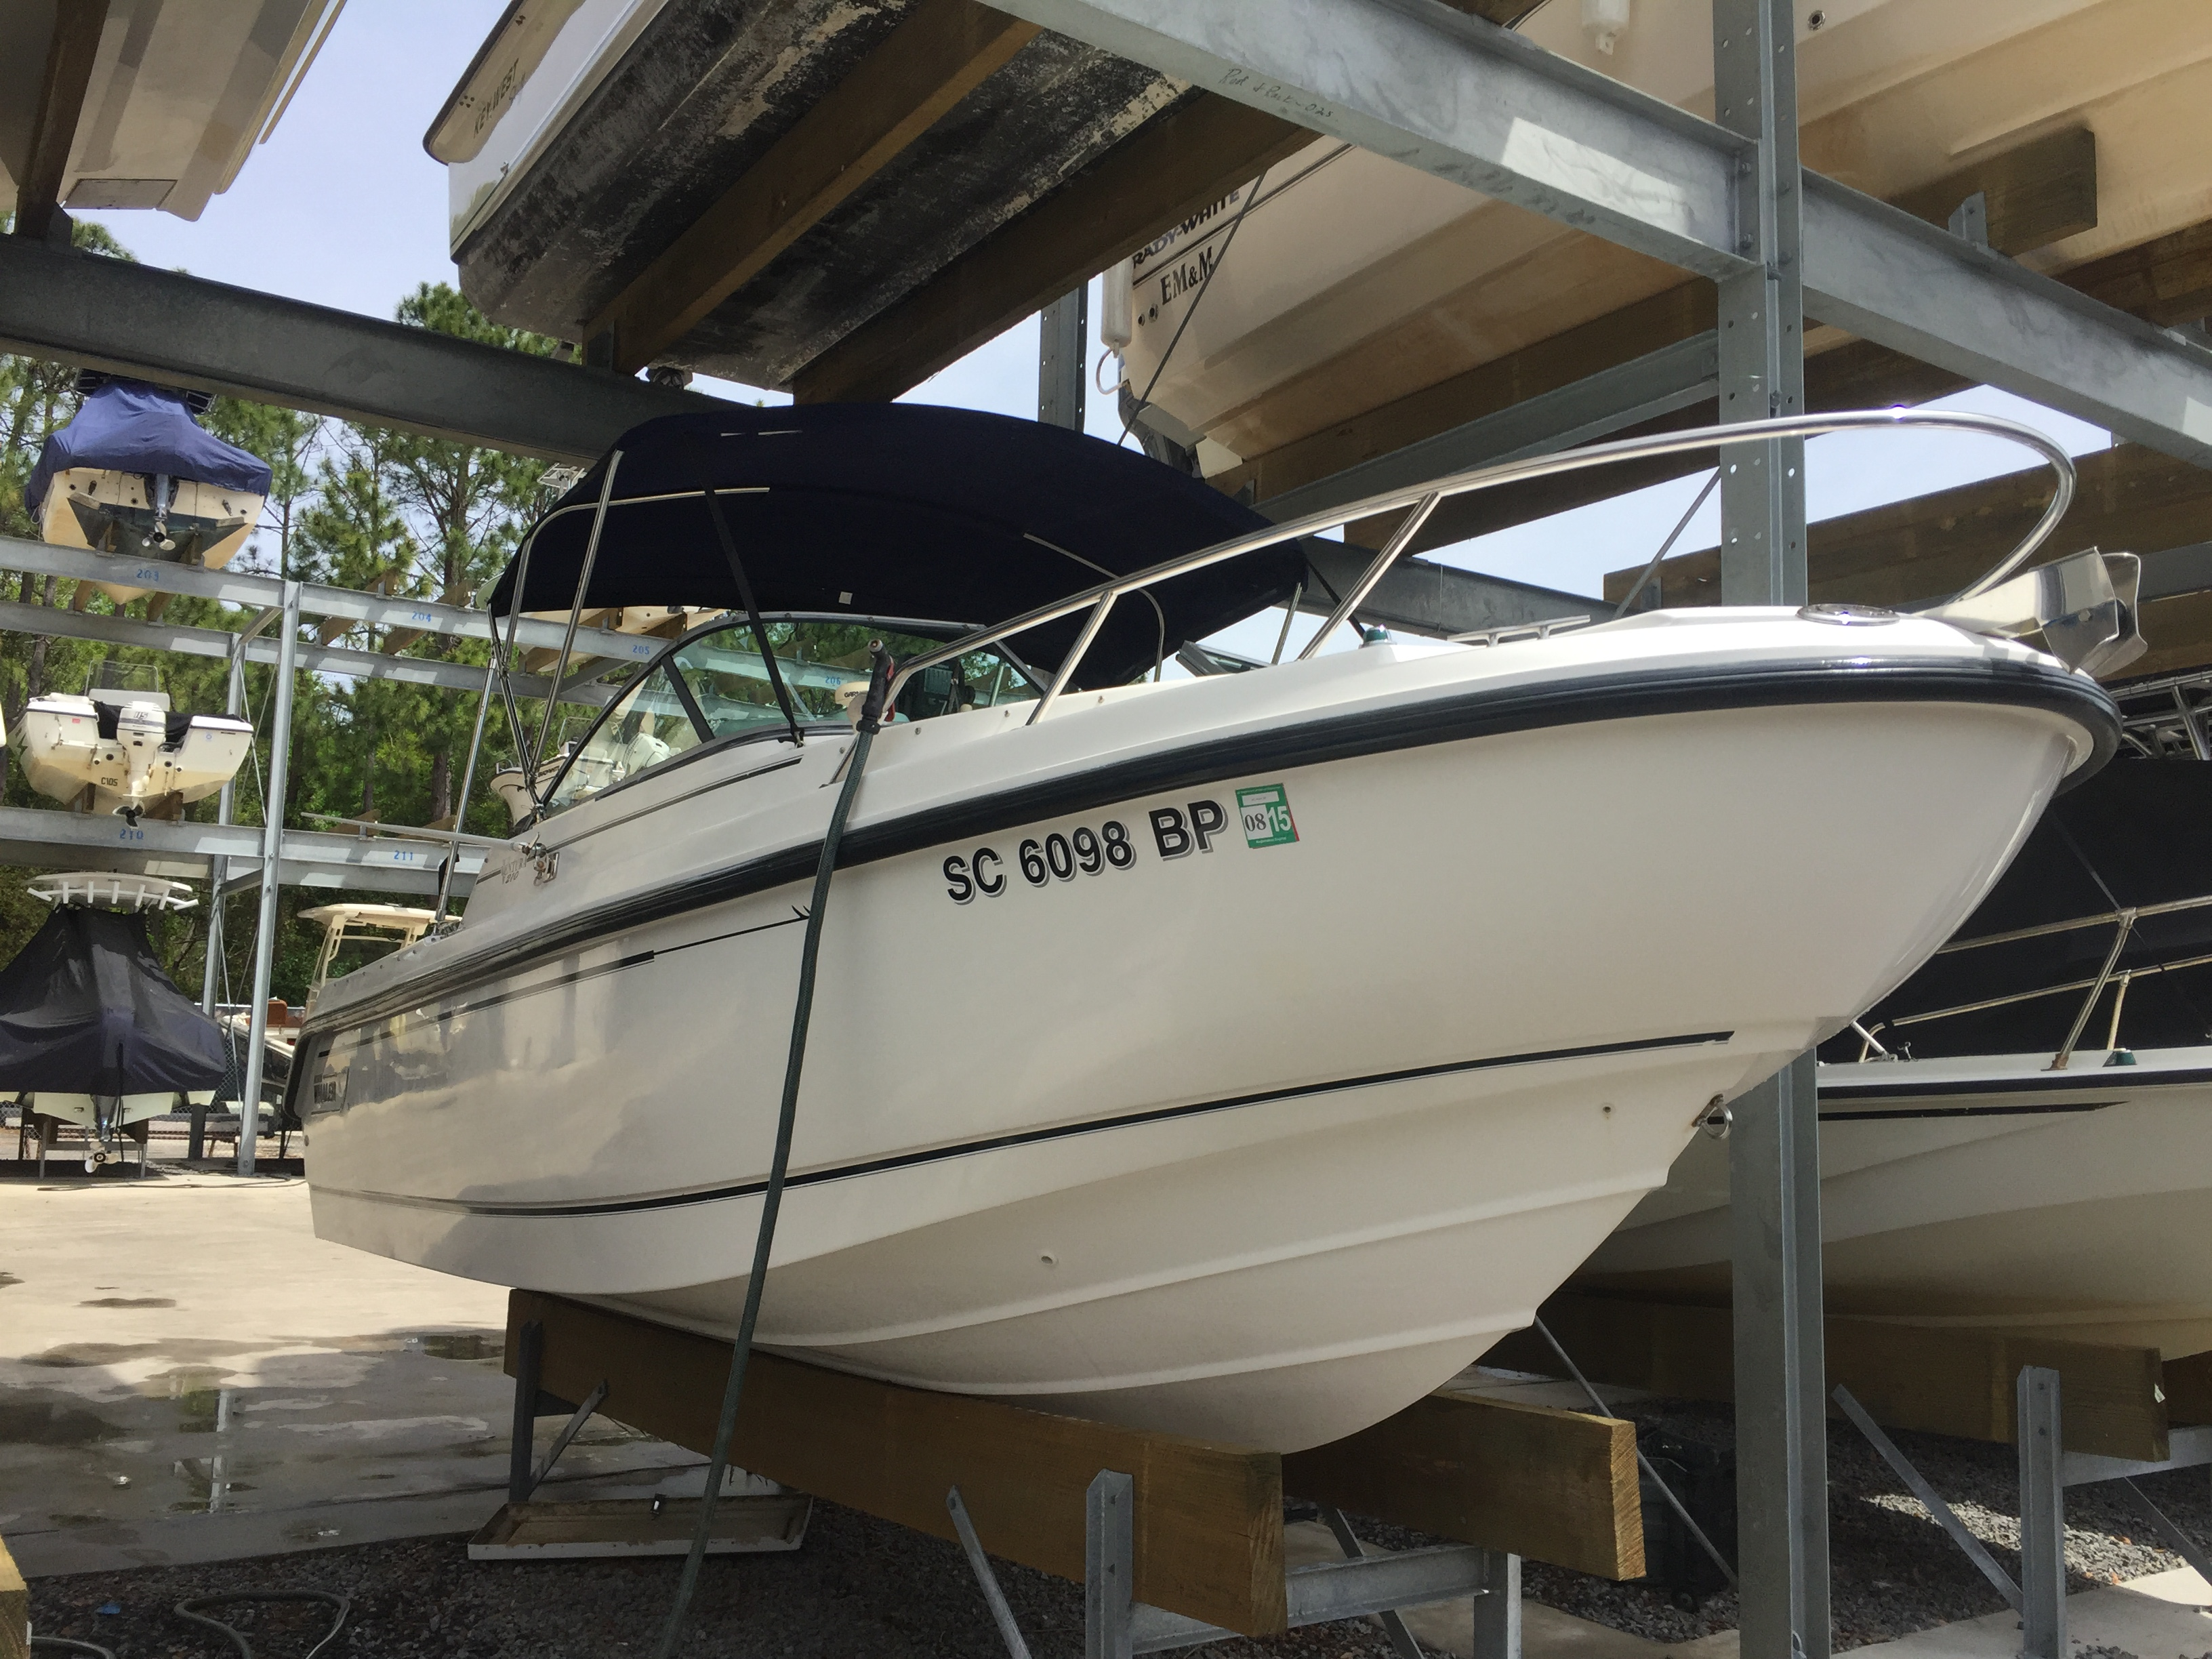 Boston Whaler Ventura 20 Cc